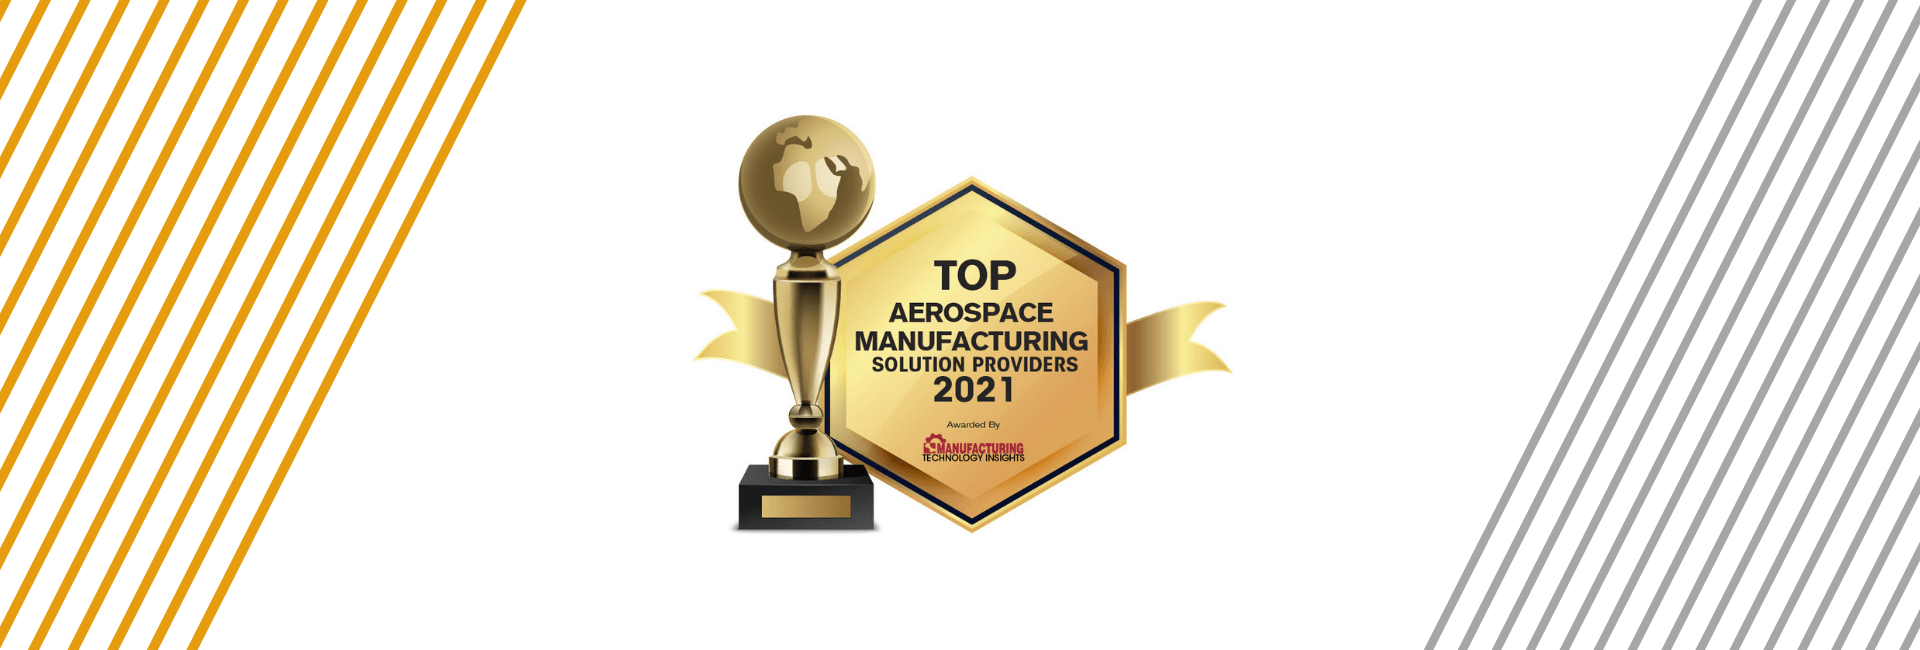 OLEDWorks Named Top 10 Aerospace Manufacturing Solution Providers 2021